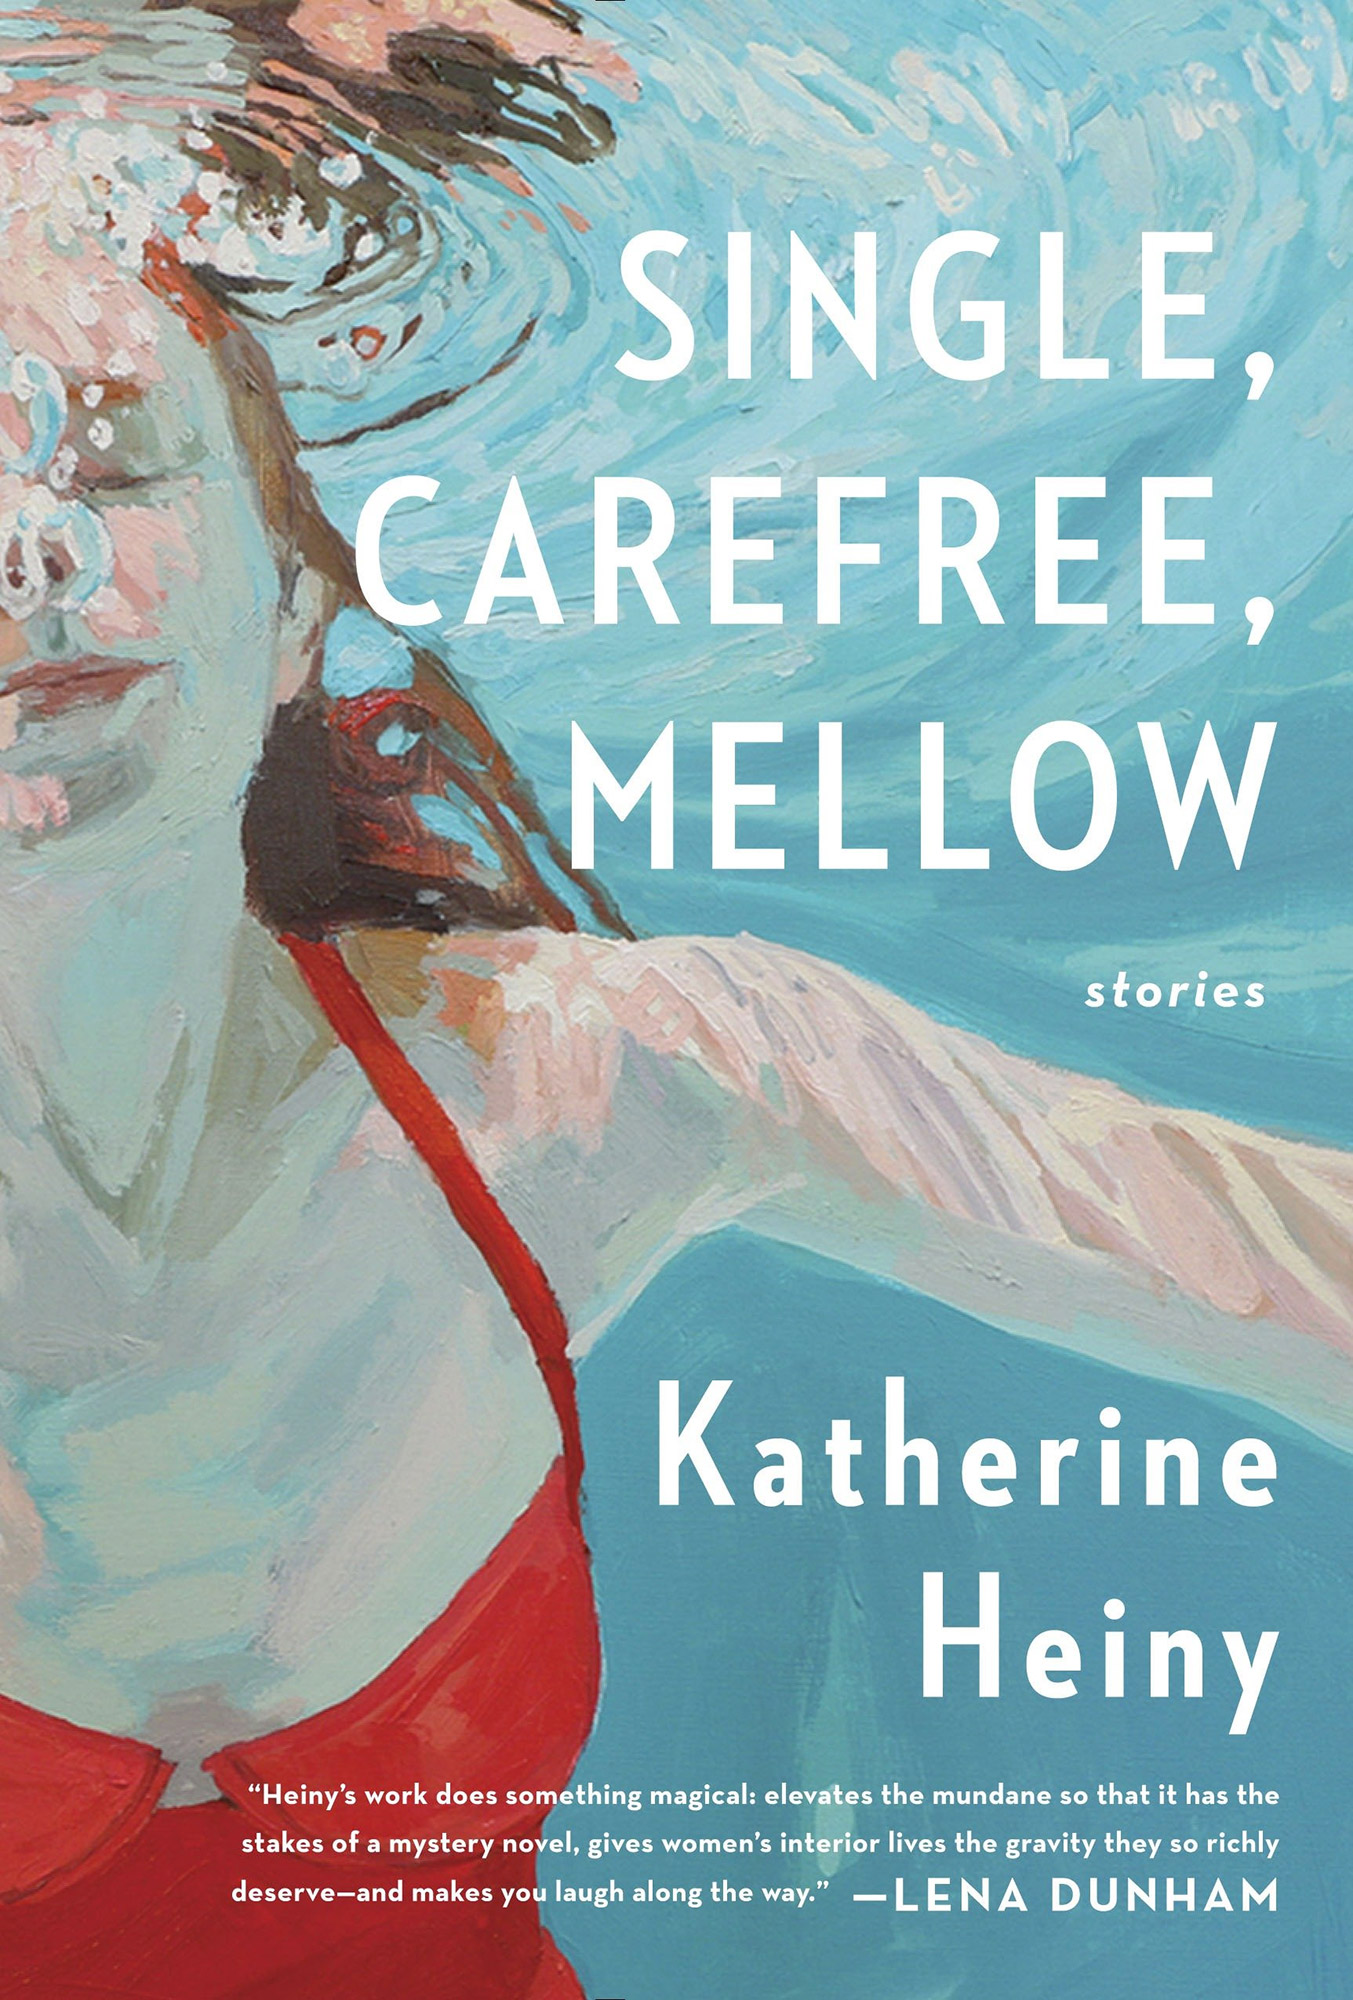 Single, Carefree, Mellow, by Katherine Heiny